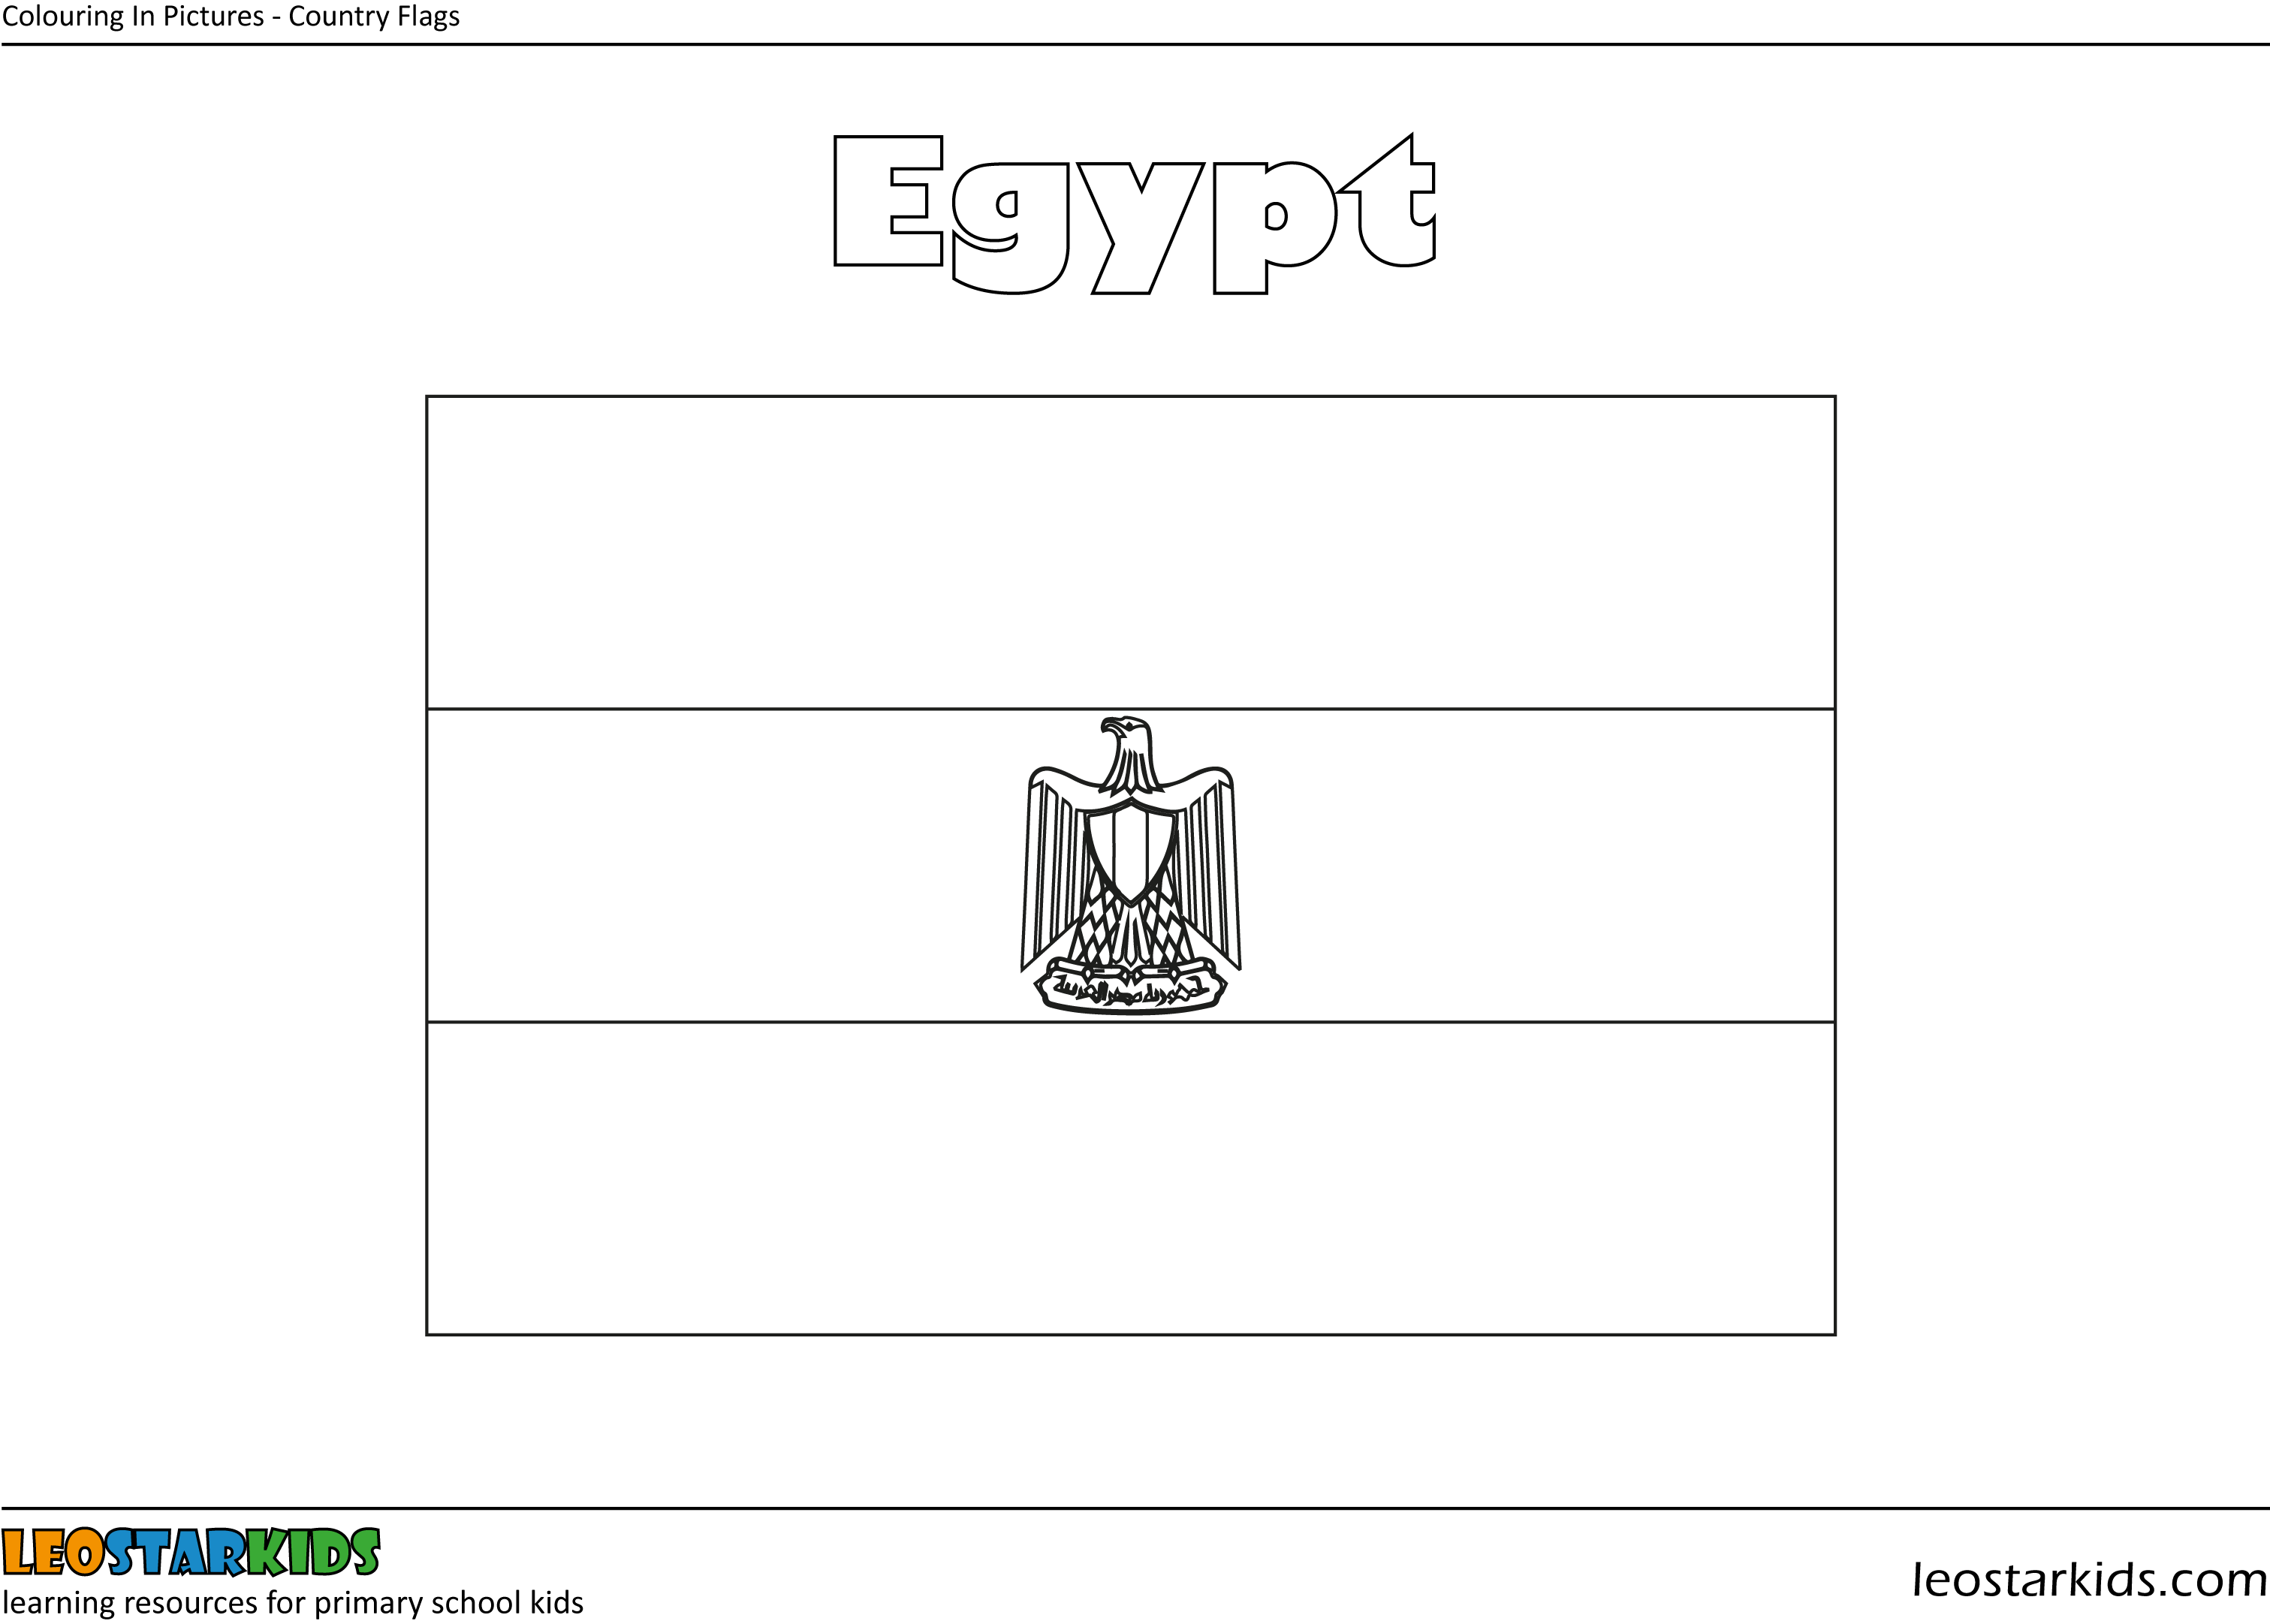 egypt flag coloring pages for kids   Colouring In Pictures - National Flags - LEOSTARKIDS